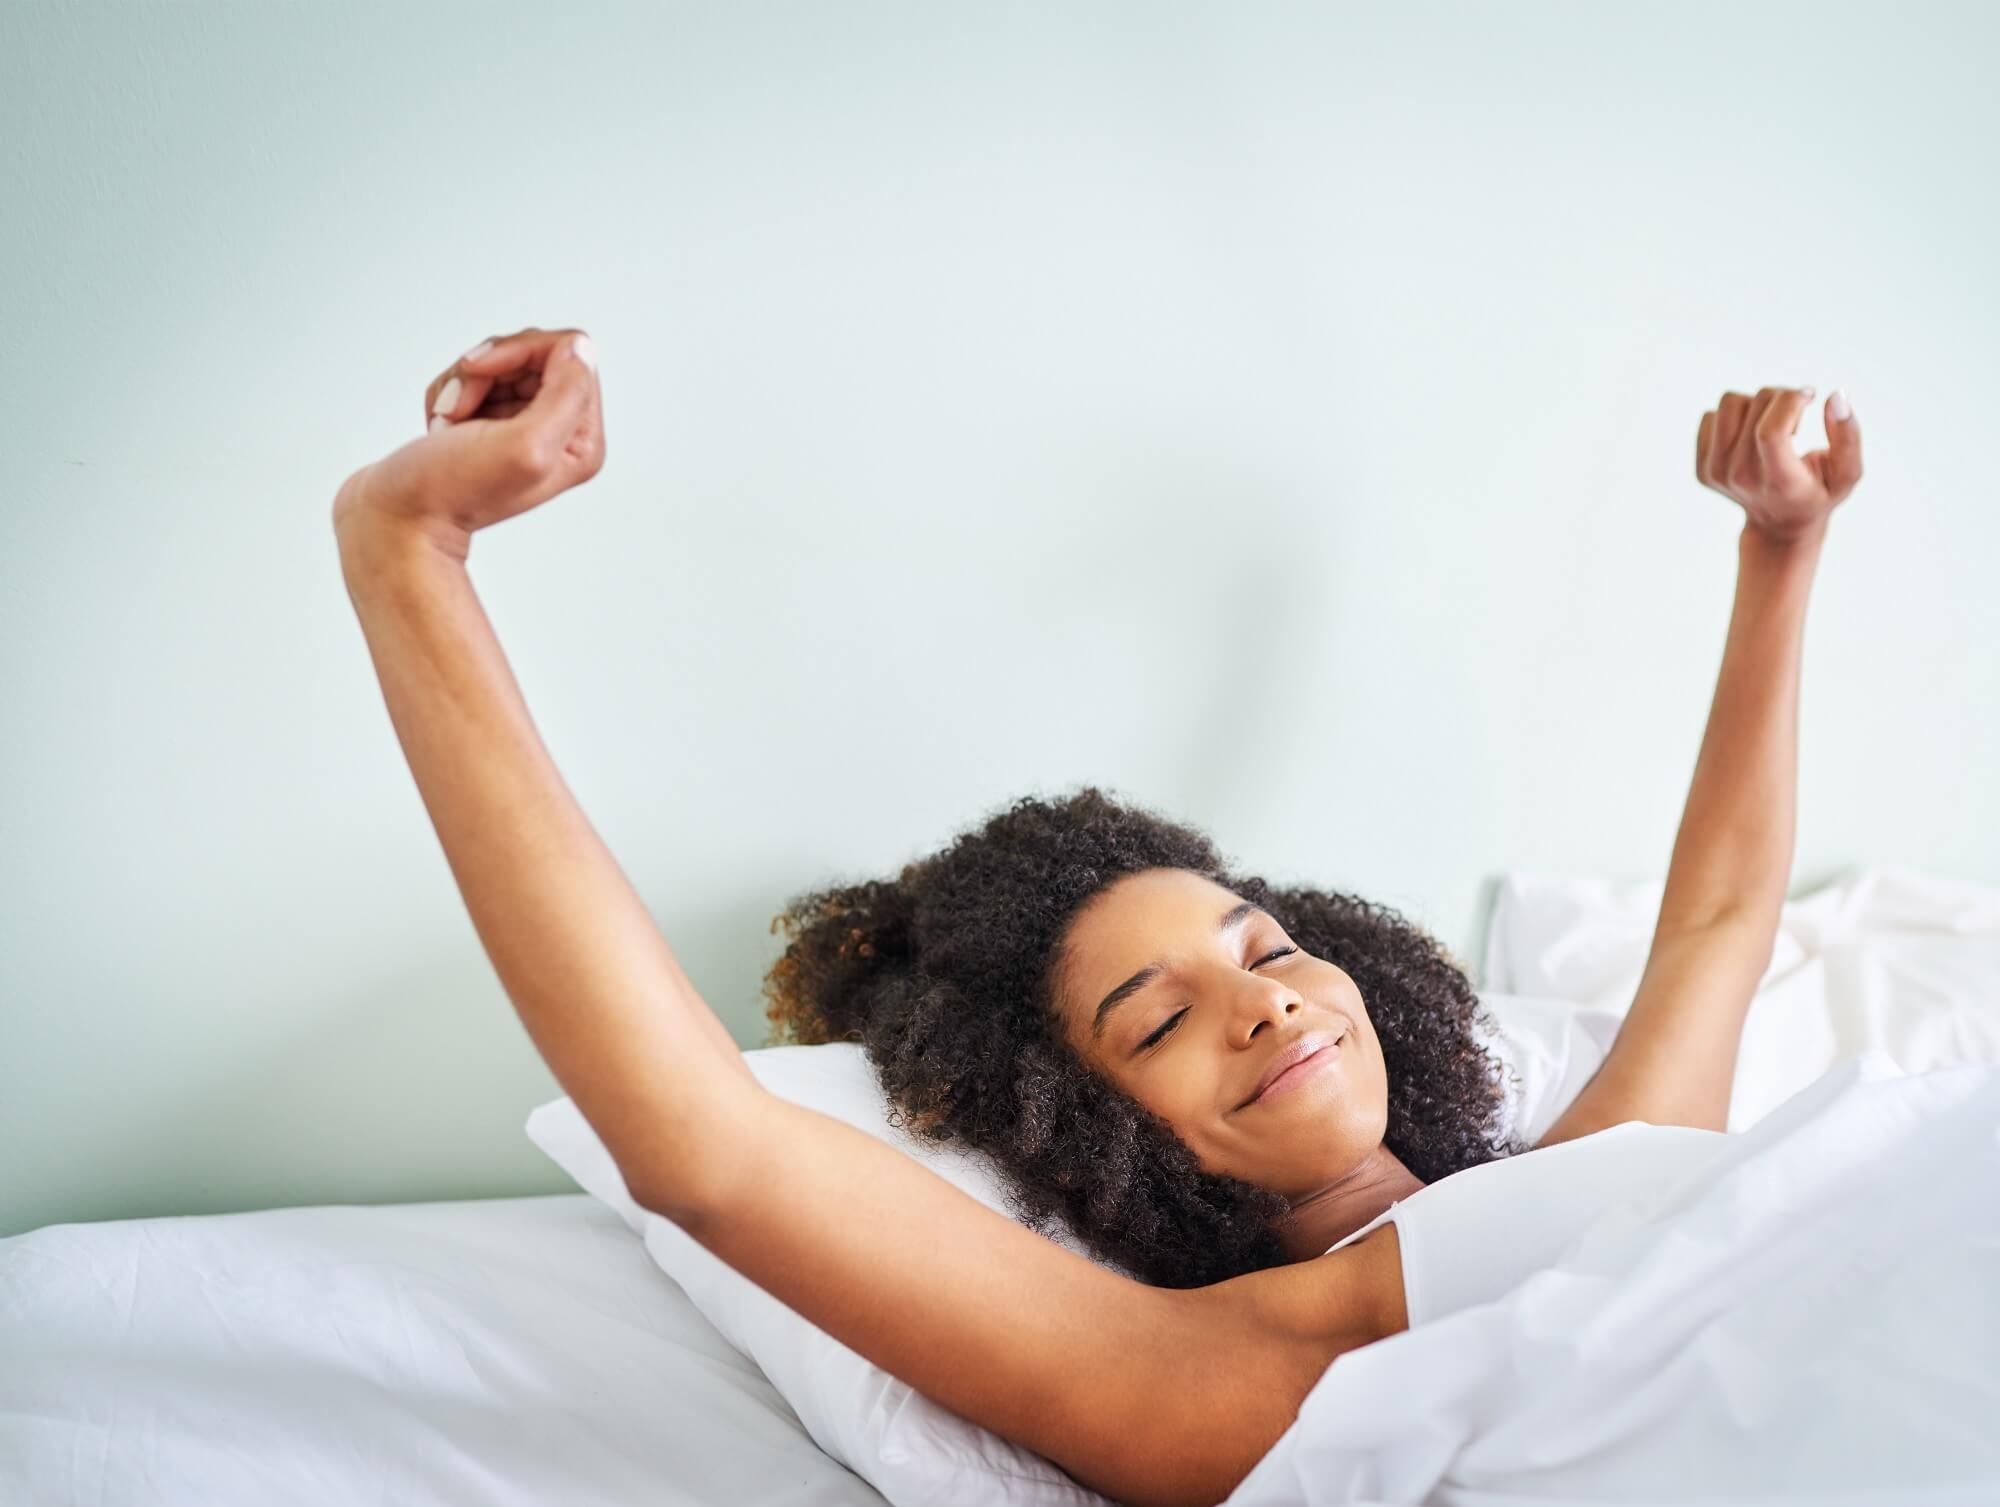 In a National Sleep Foundation survey, participants prioritized physical fitness, work, and hobbies above sleep.